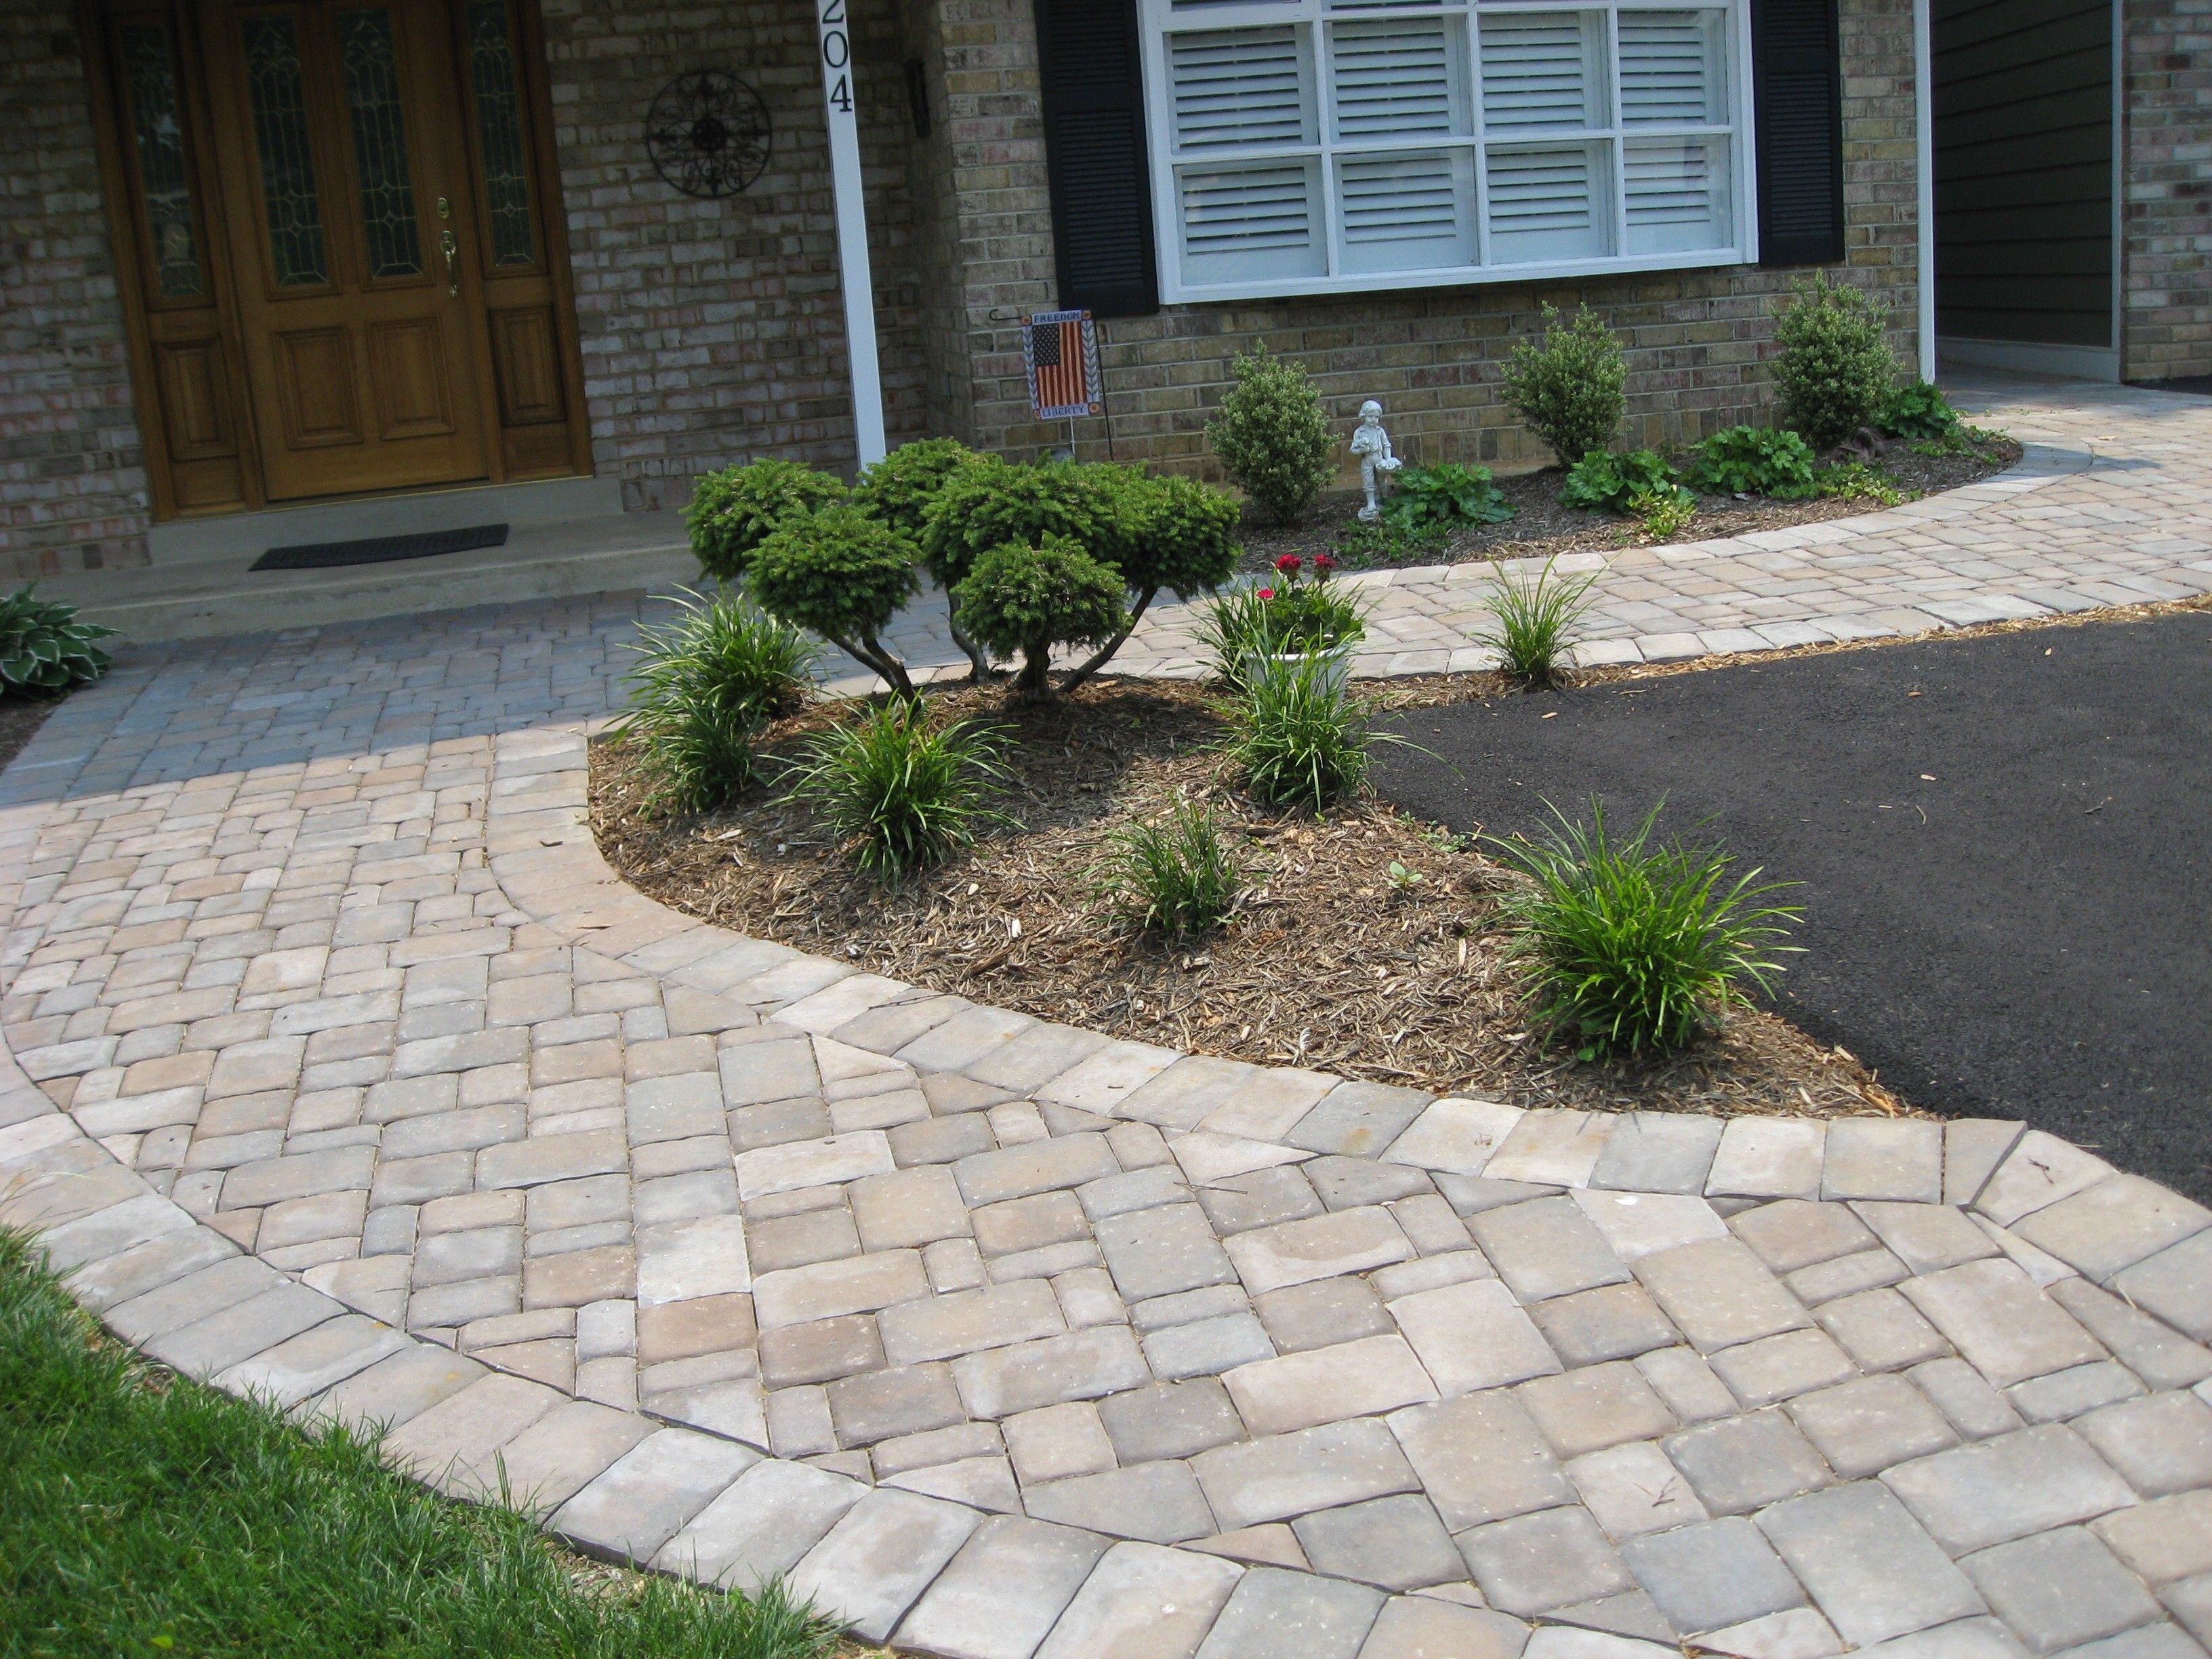 Paver walkway design garden advice for your home for Paving stone garden designs